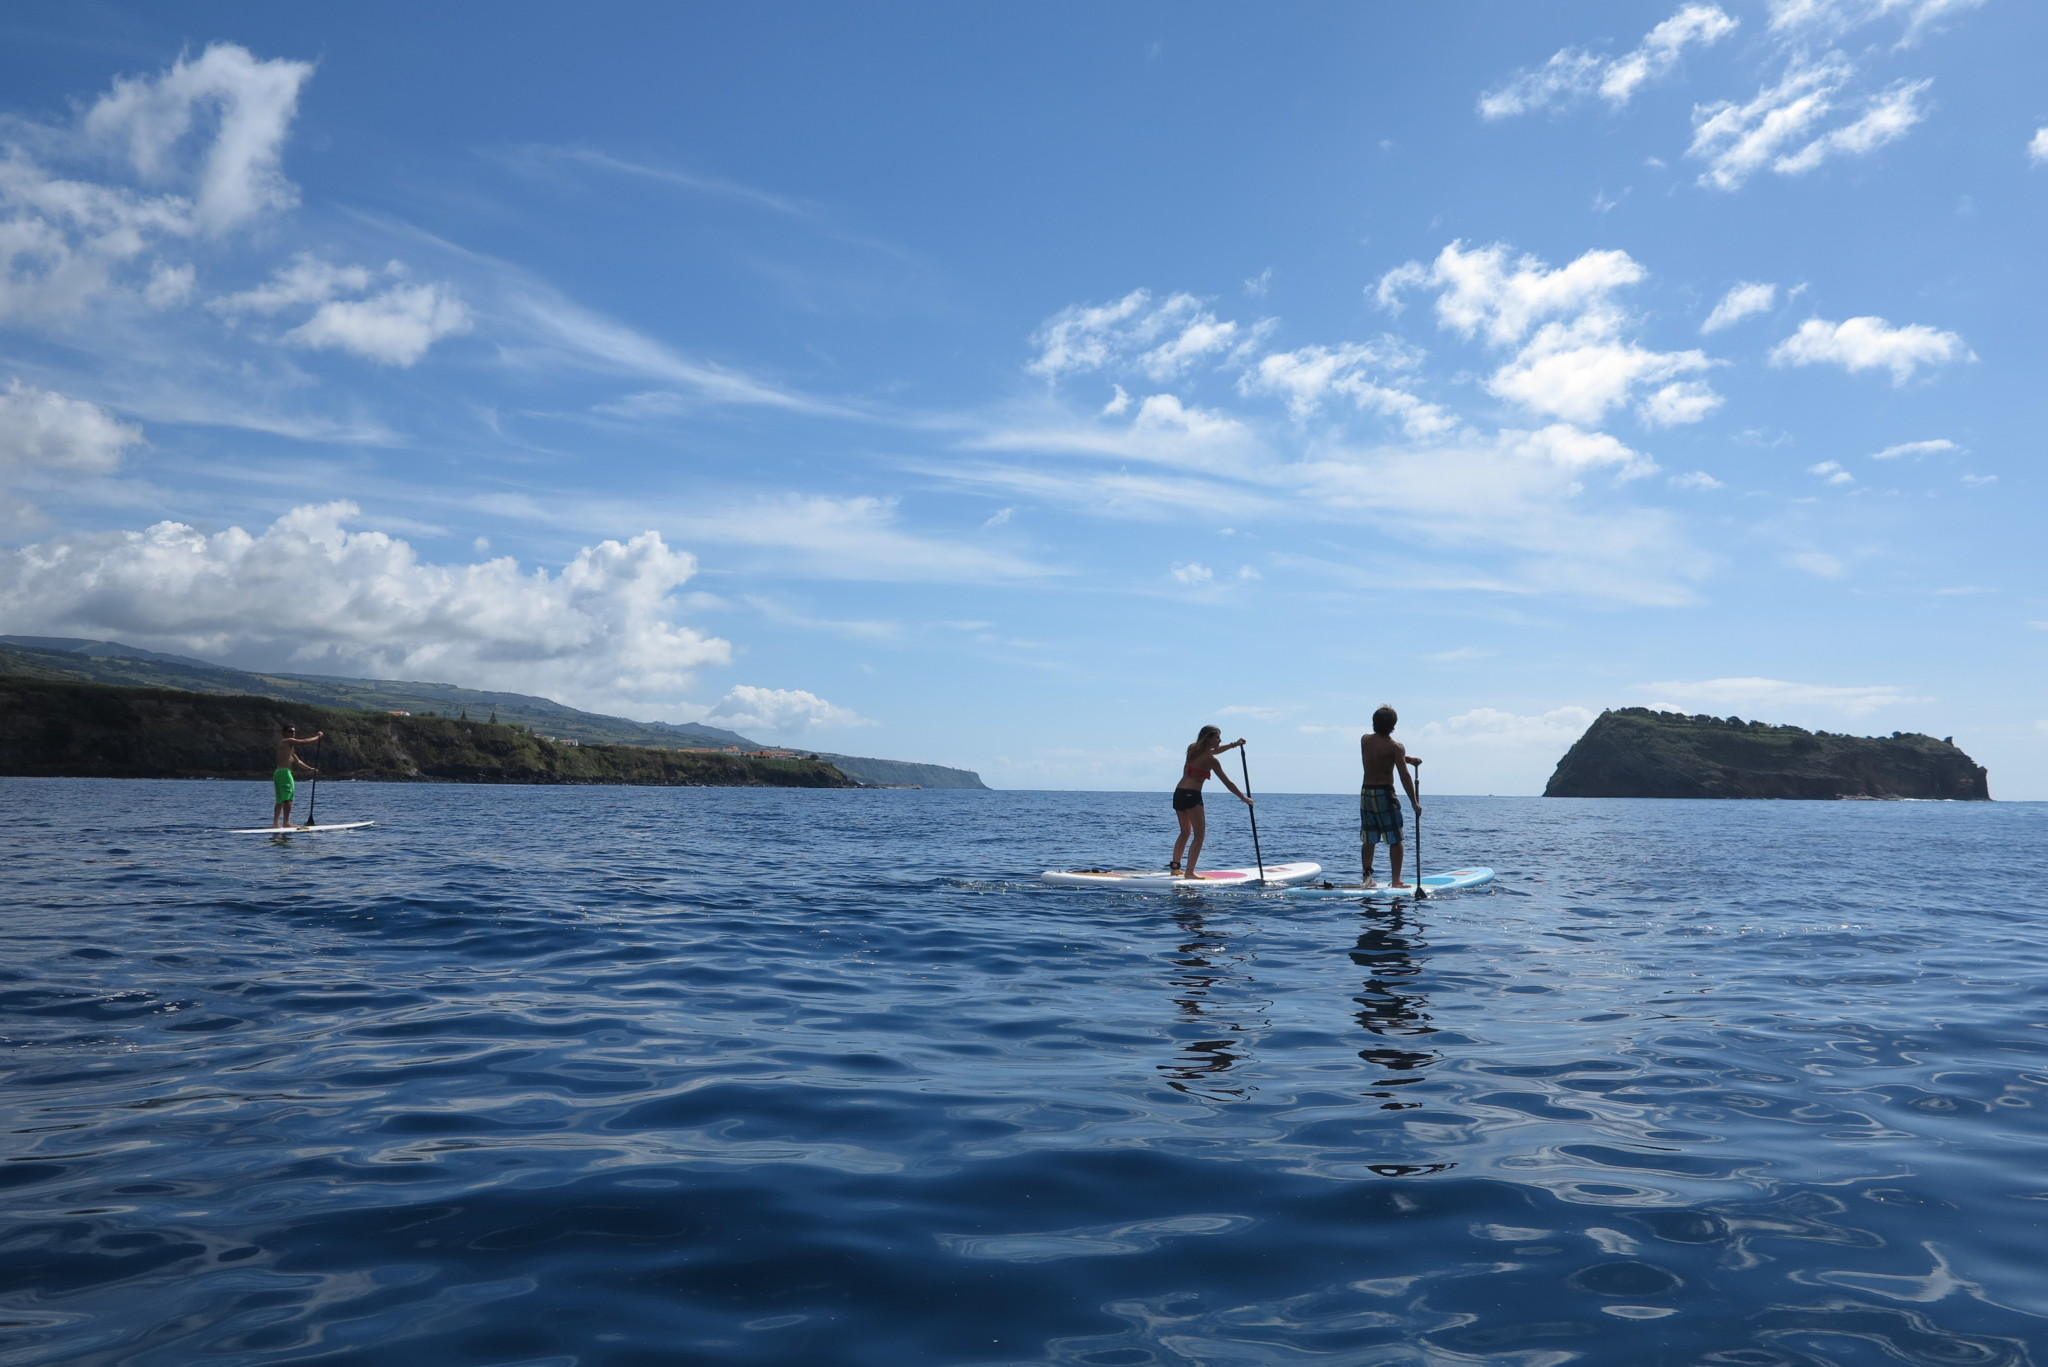 4) Stand Up Paddle Board